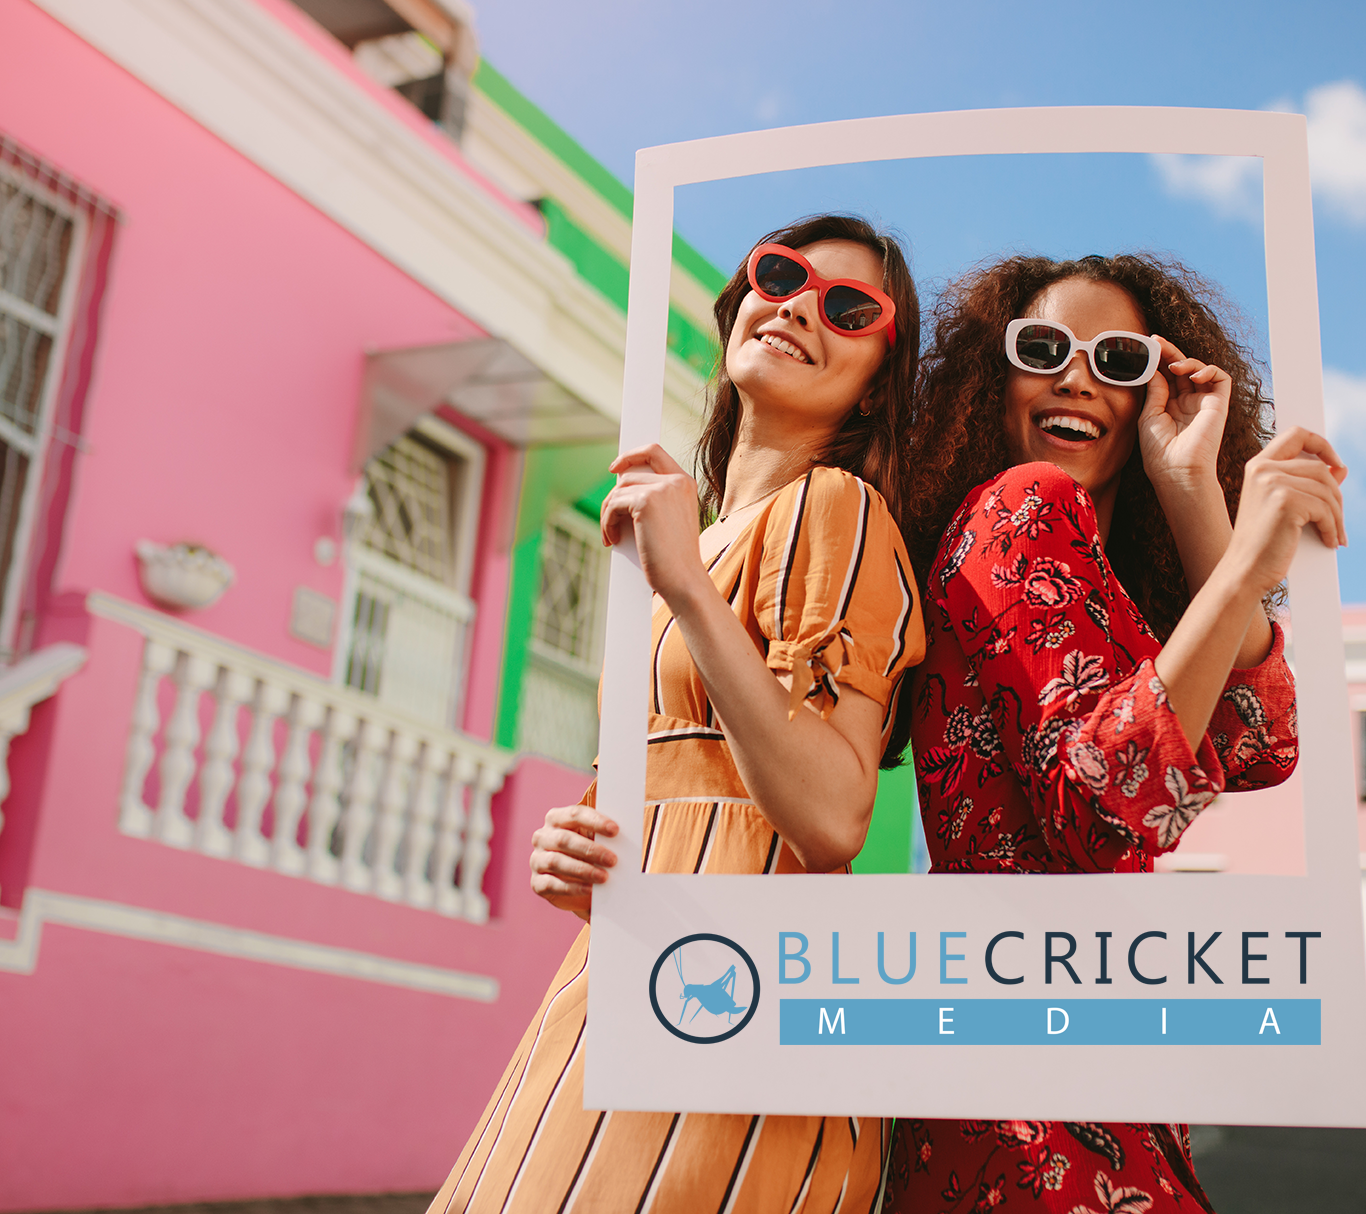 Why Choose Blue Cricket Media for Your Marketing Agency?